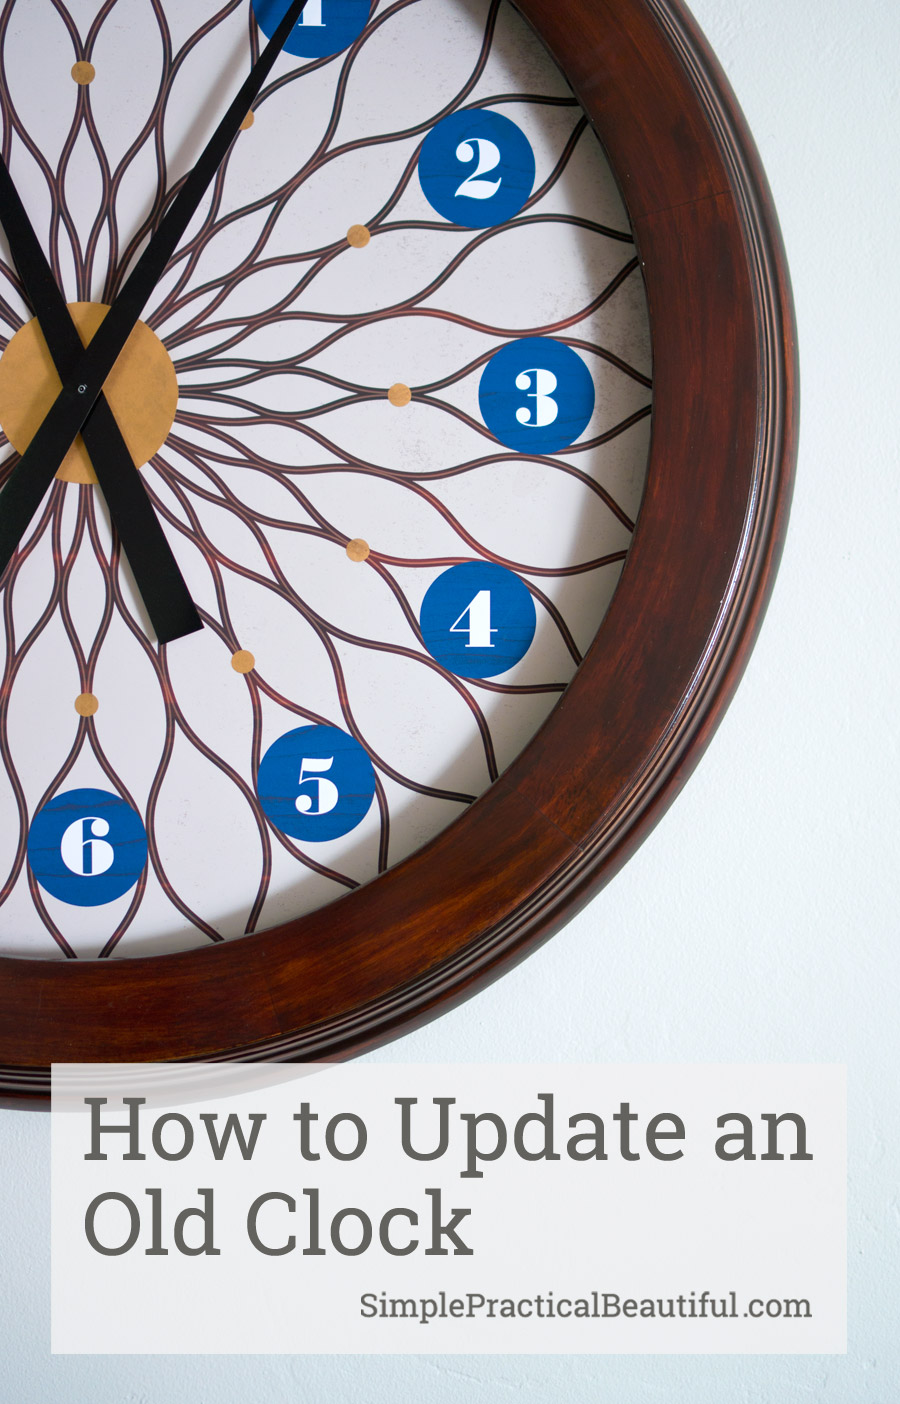 All About Clocks - How to Update an Old Clock by Simple Practical Beautiful